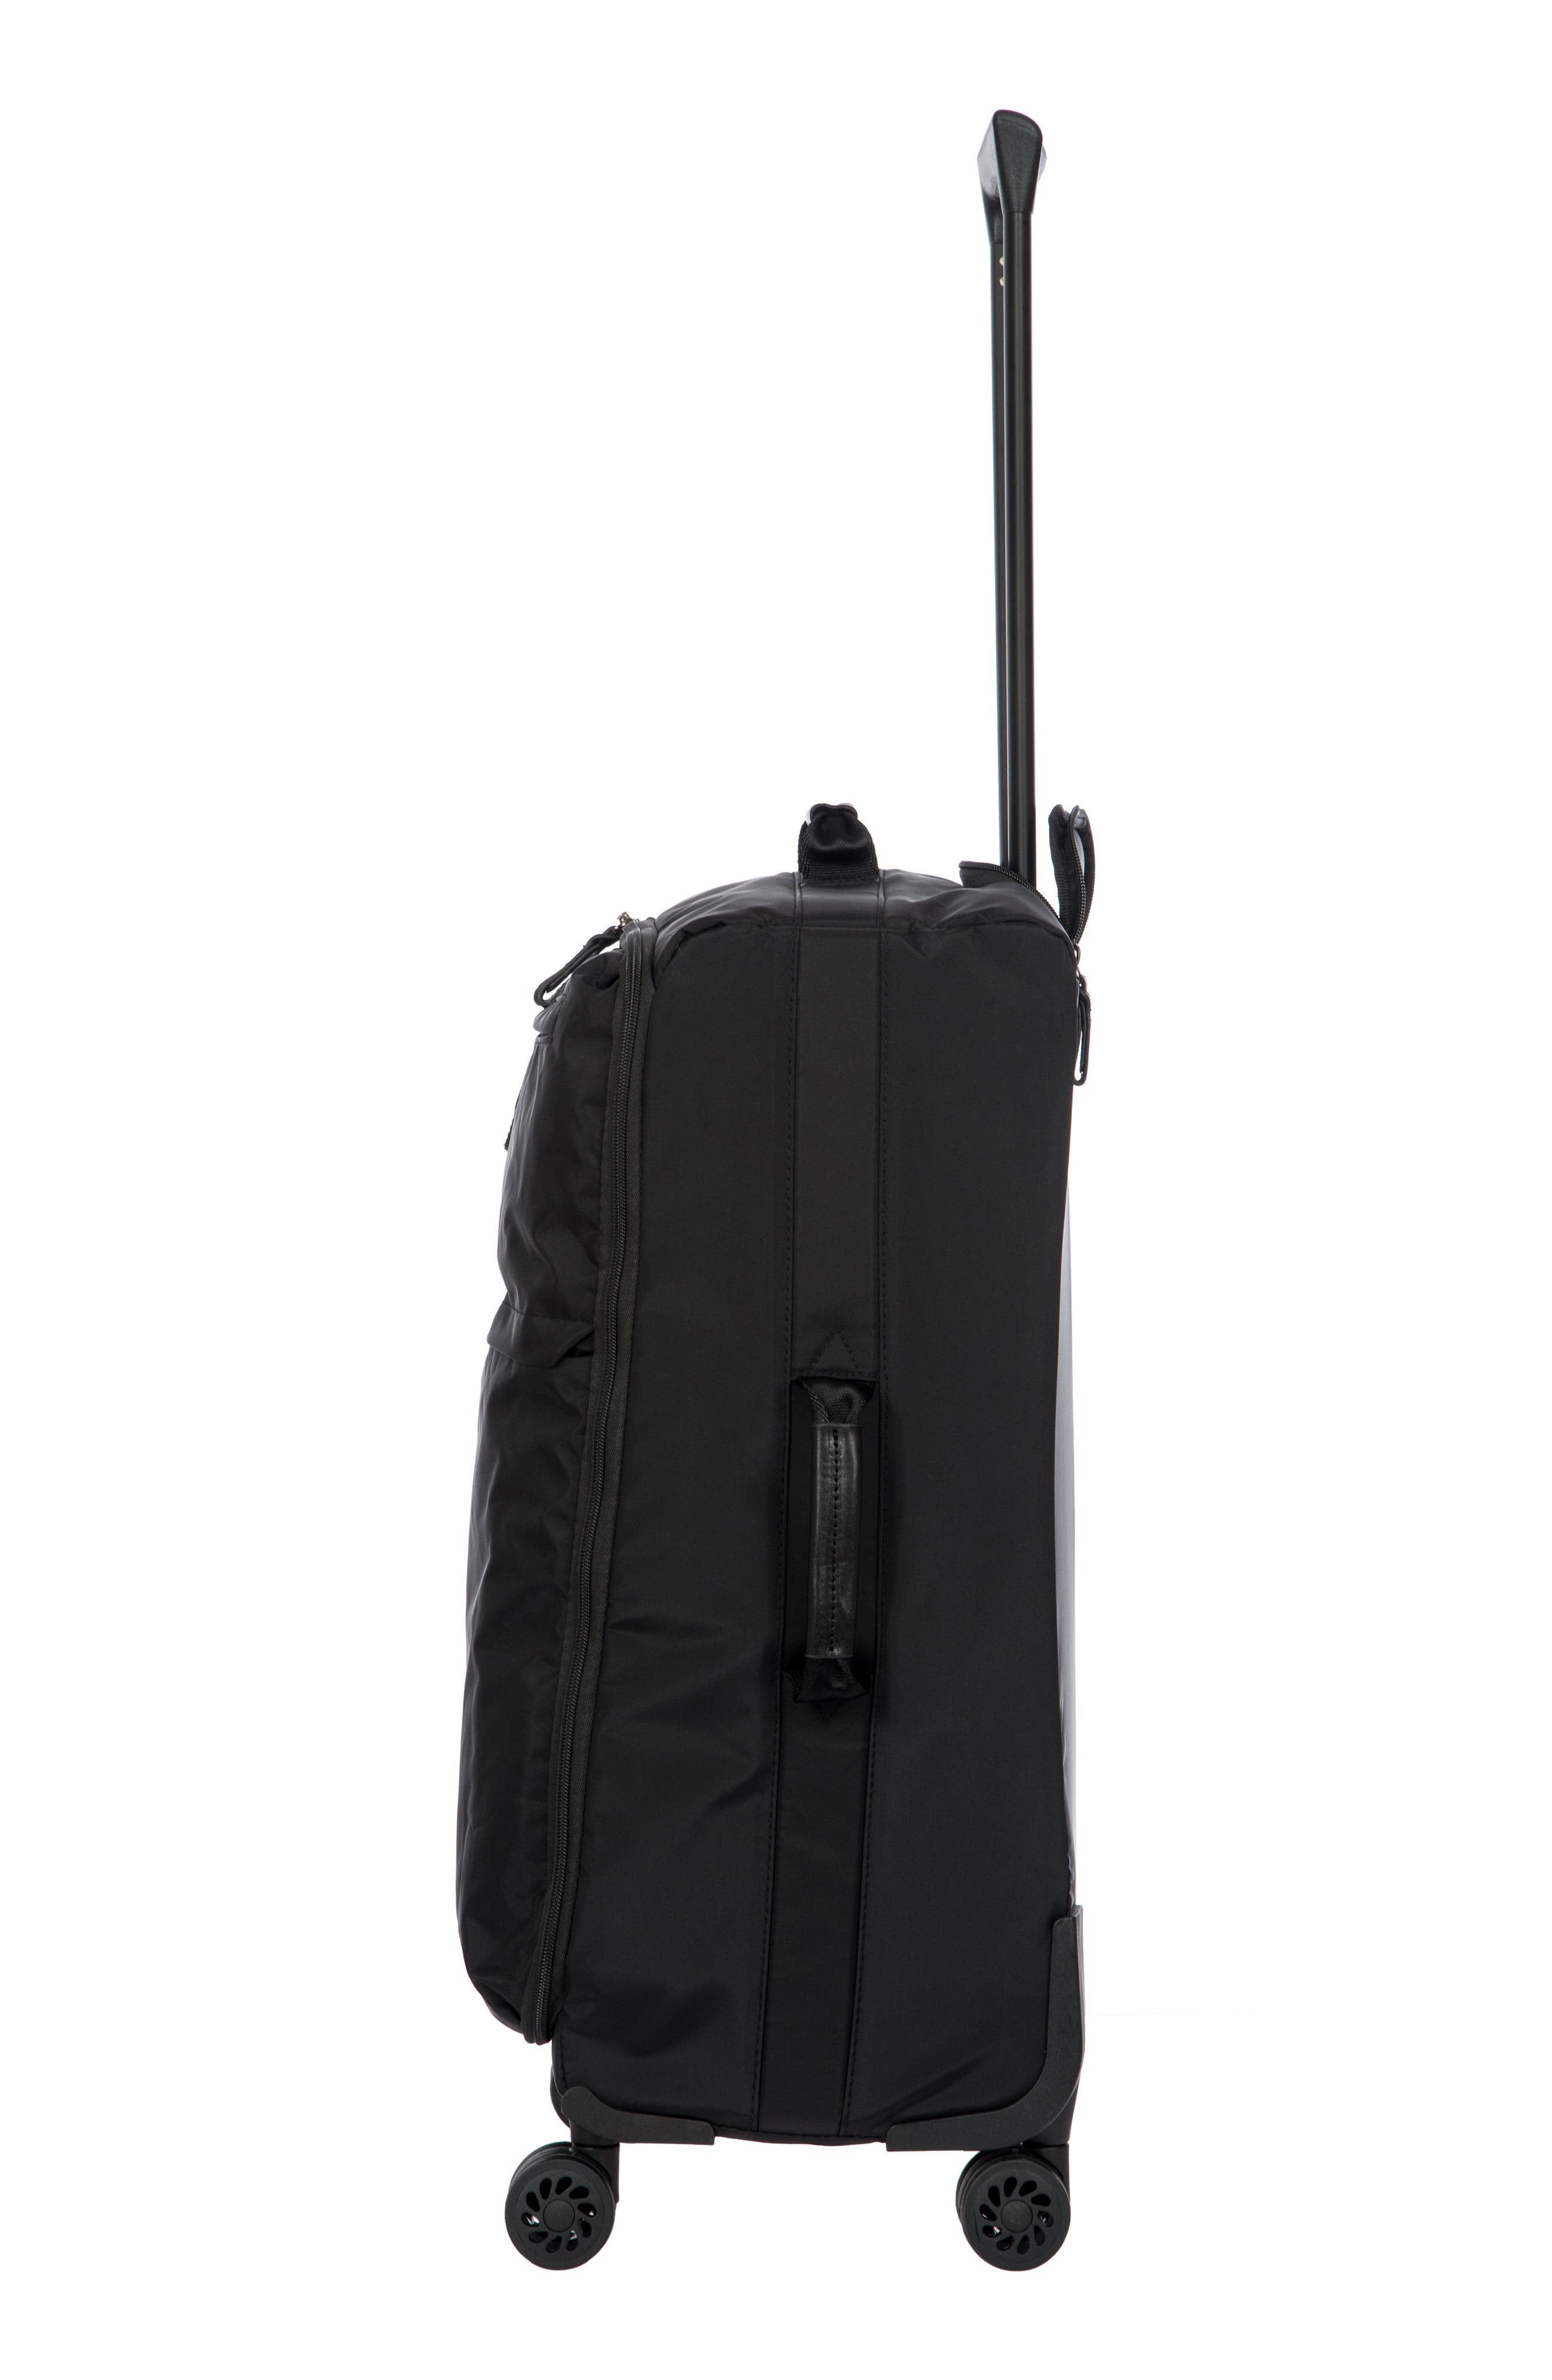 X-Bag 25-Inch Spinner Suitcase,                             Alternate thumbnail 3, color,                             Black/ Black